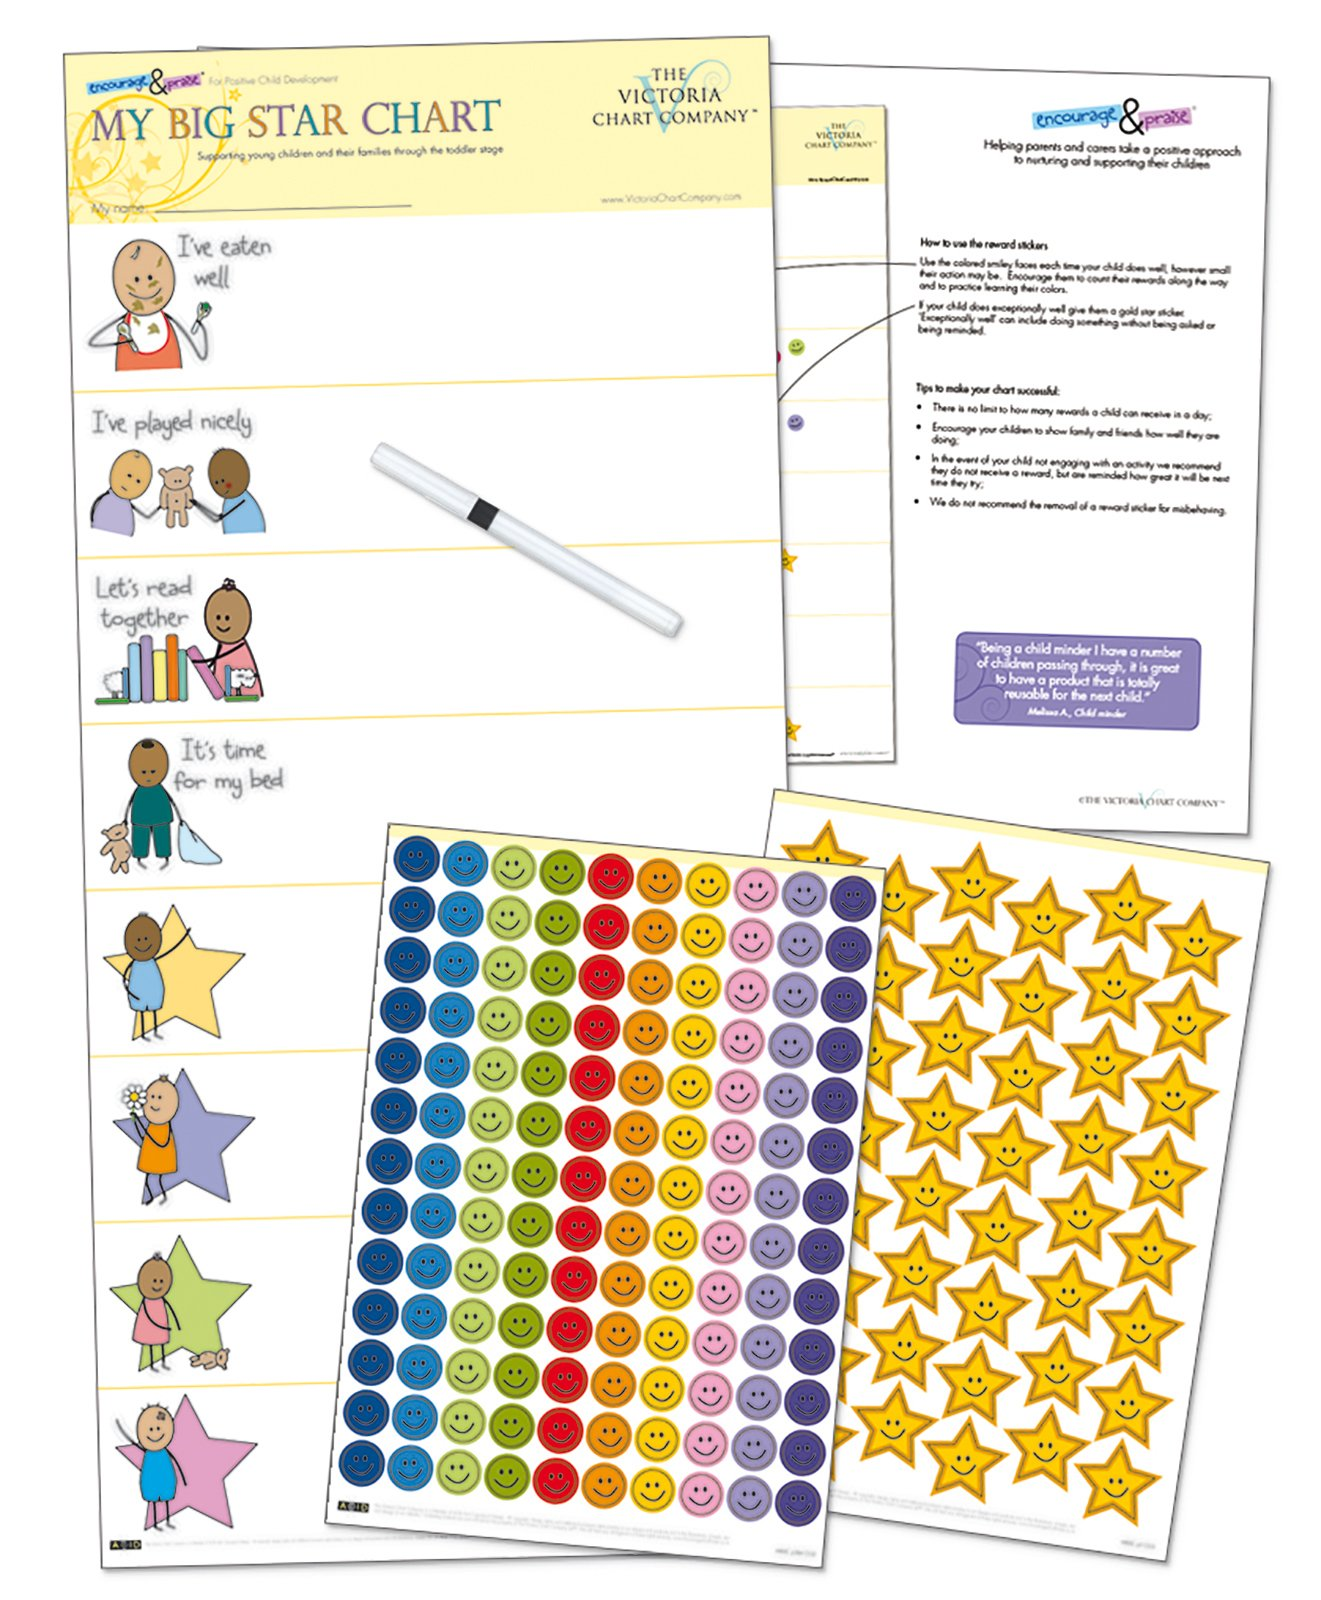 My Big Star Reward Chart (2yrs+) - Award Winning - Great Results - Manage Toddler Development with Positive Reinforcement (25 x 11 inches)